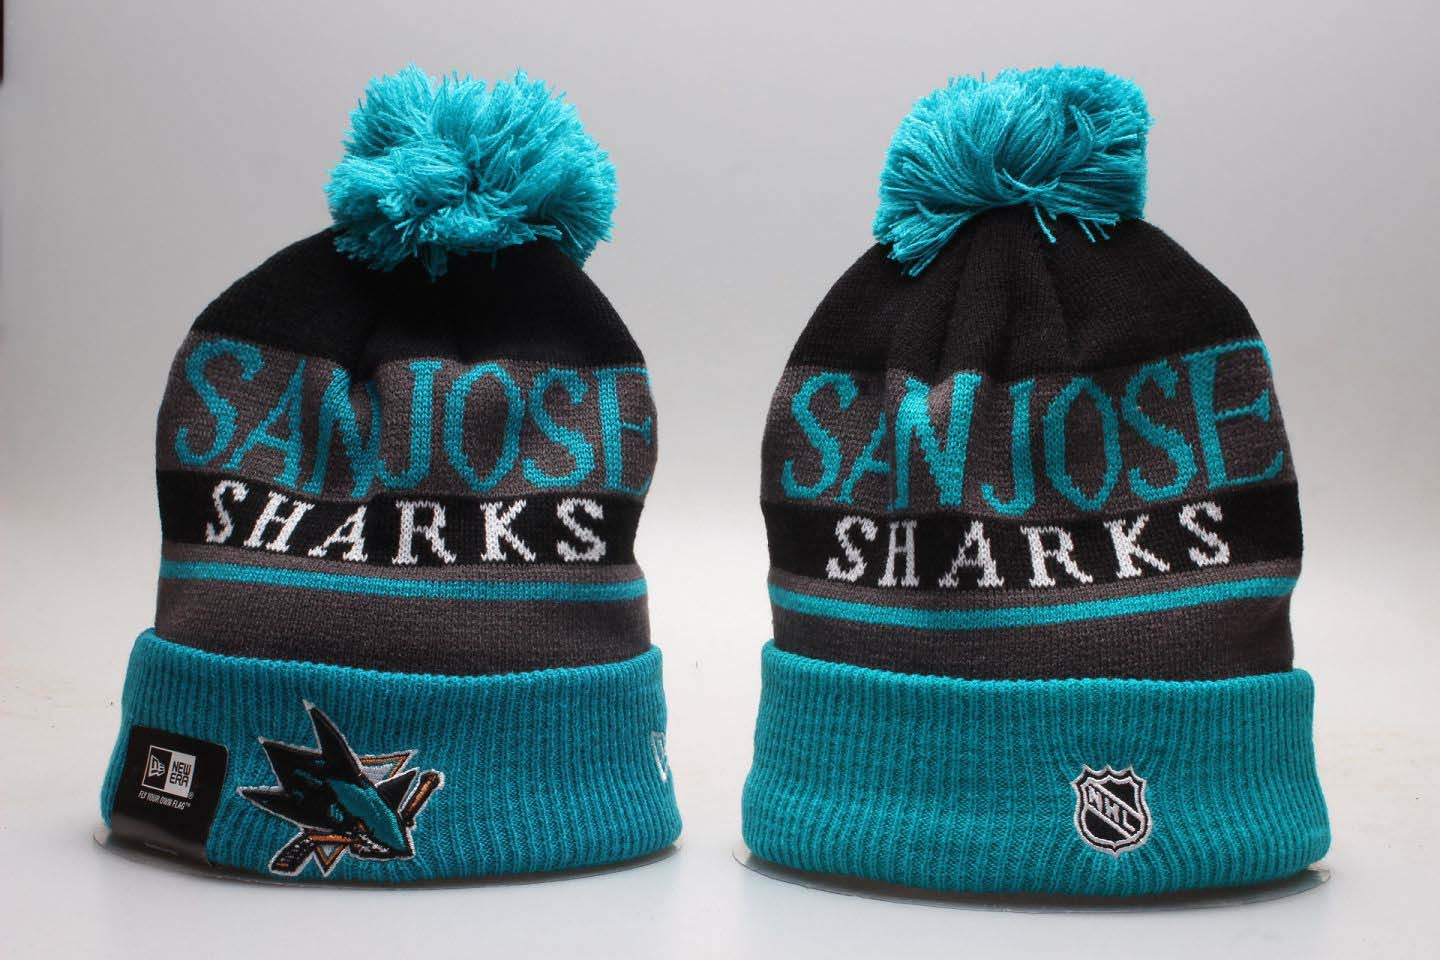 NHL San Jose Sharks Beanie hot hat